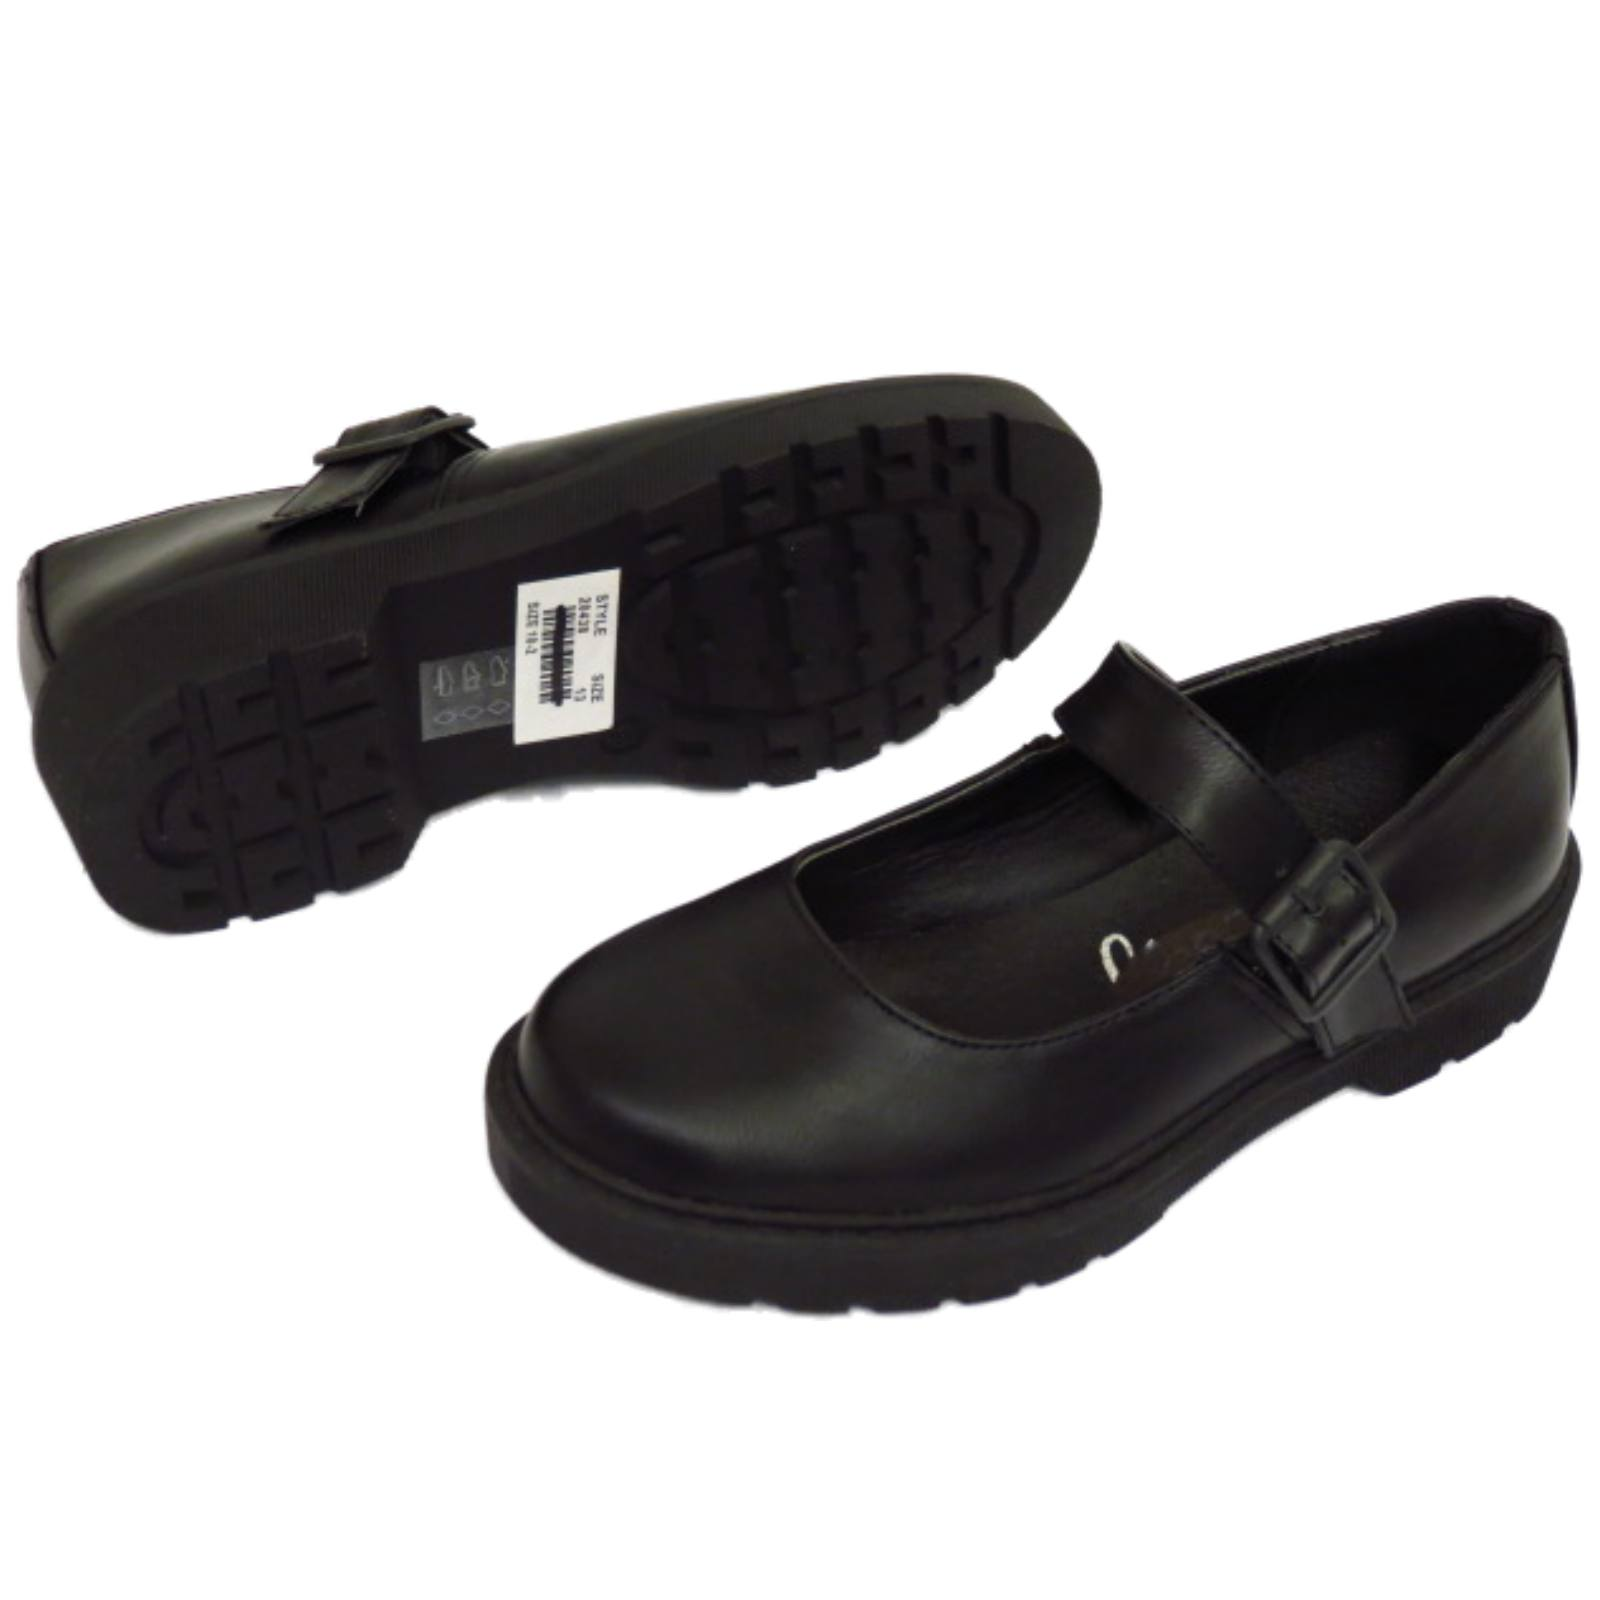 GIRLS-KIDS-CHILDRENS-BUCKLE-T-BAR-BLACK-SCHOOL-PUMPS-DOLLY-SMART-FLAT-SHOES-10-5 thumbnail 47